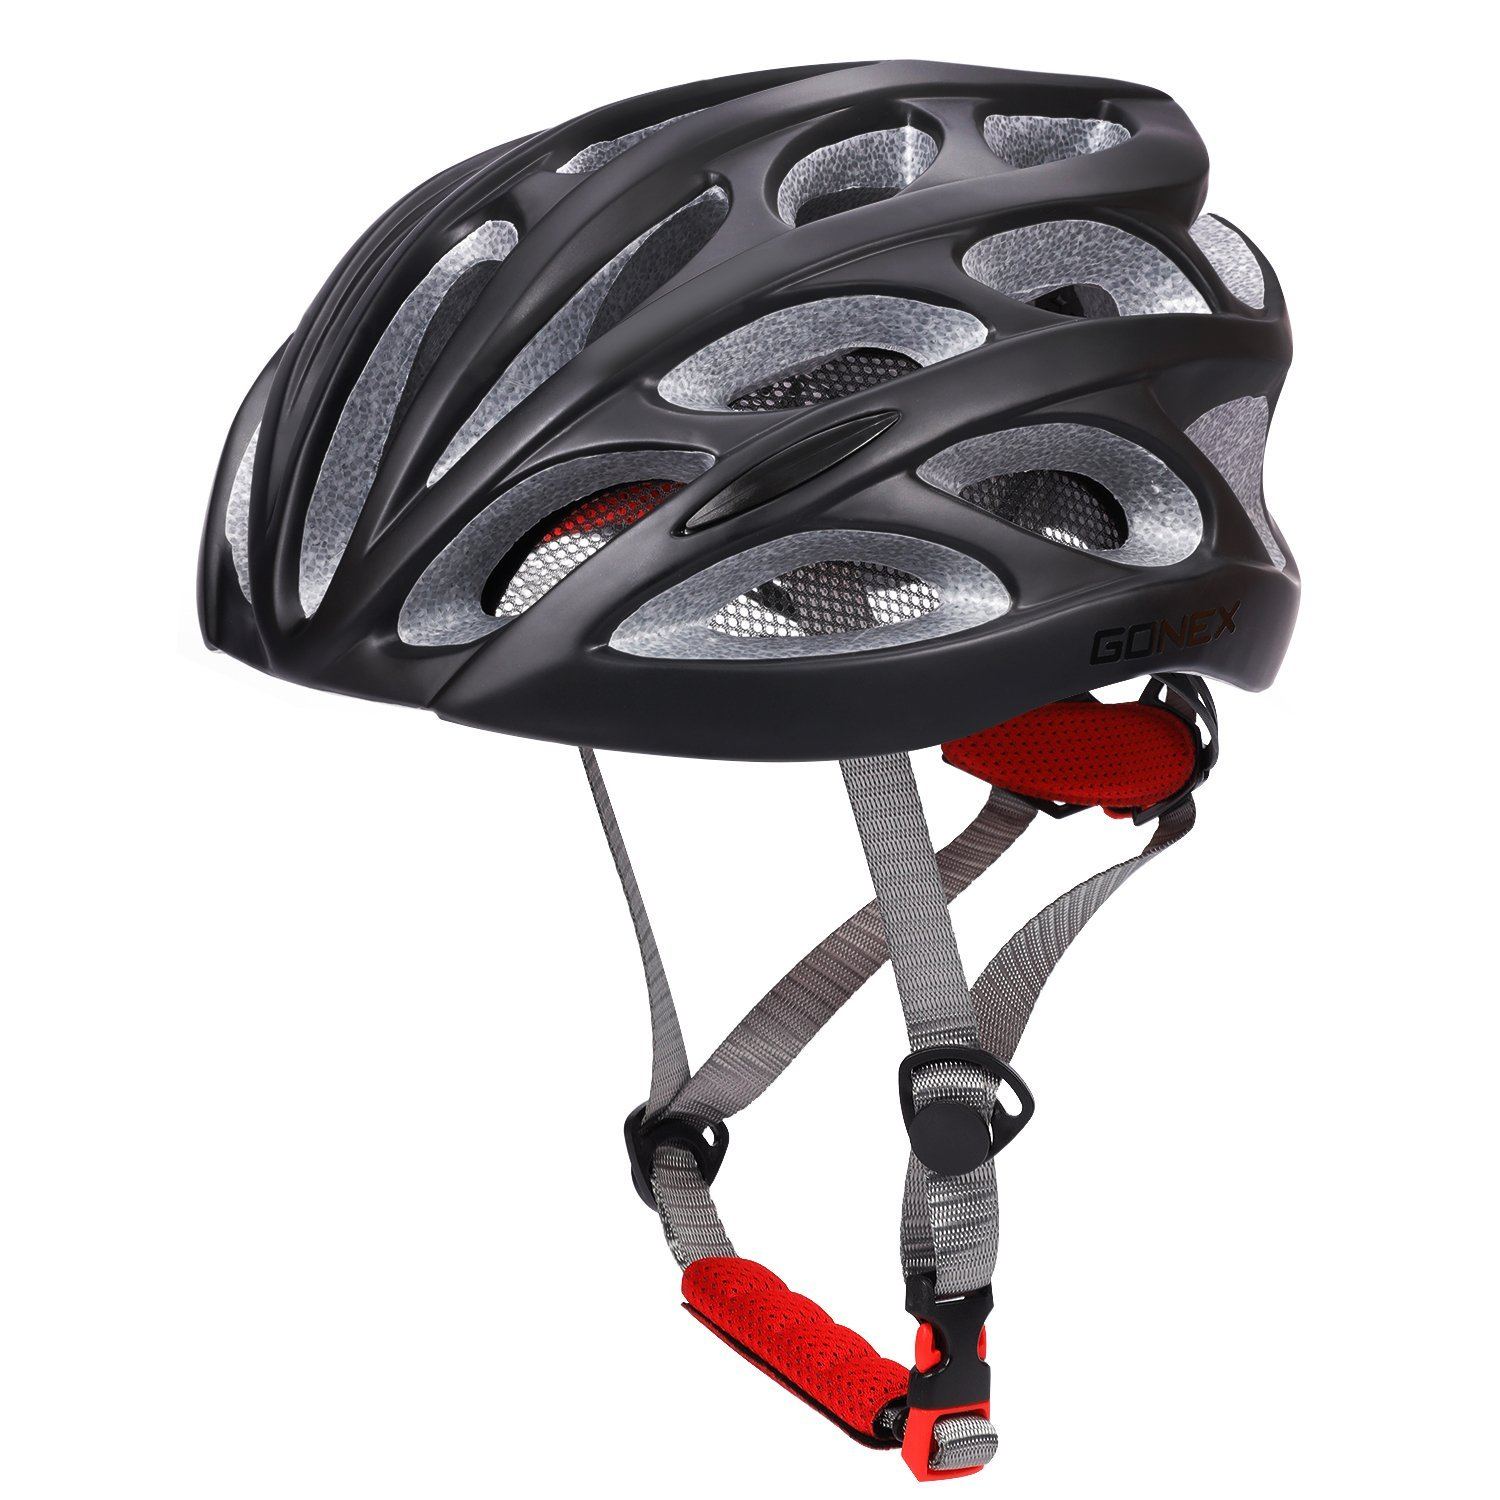 The Gonex Adult Bike Helmet